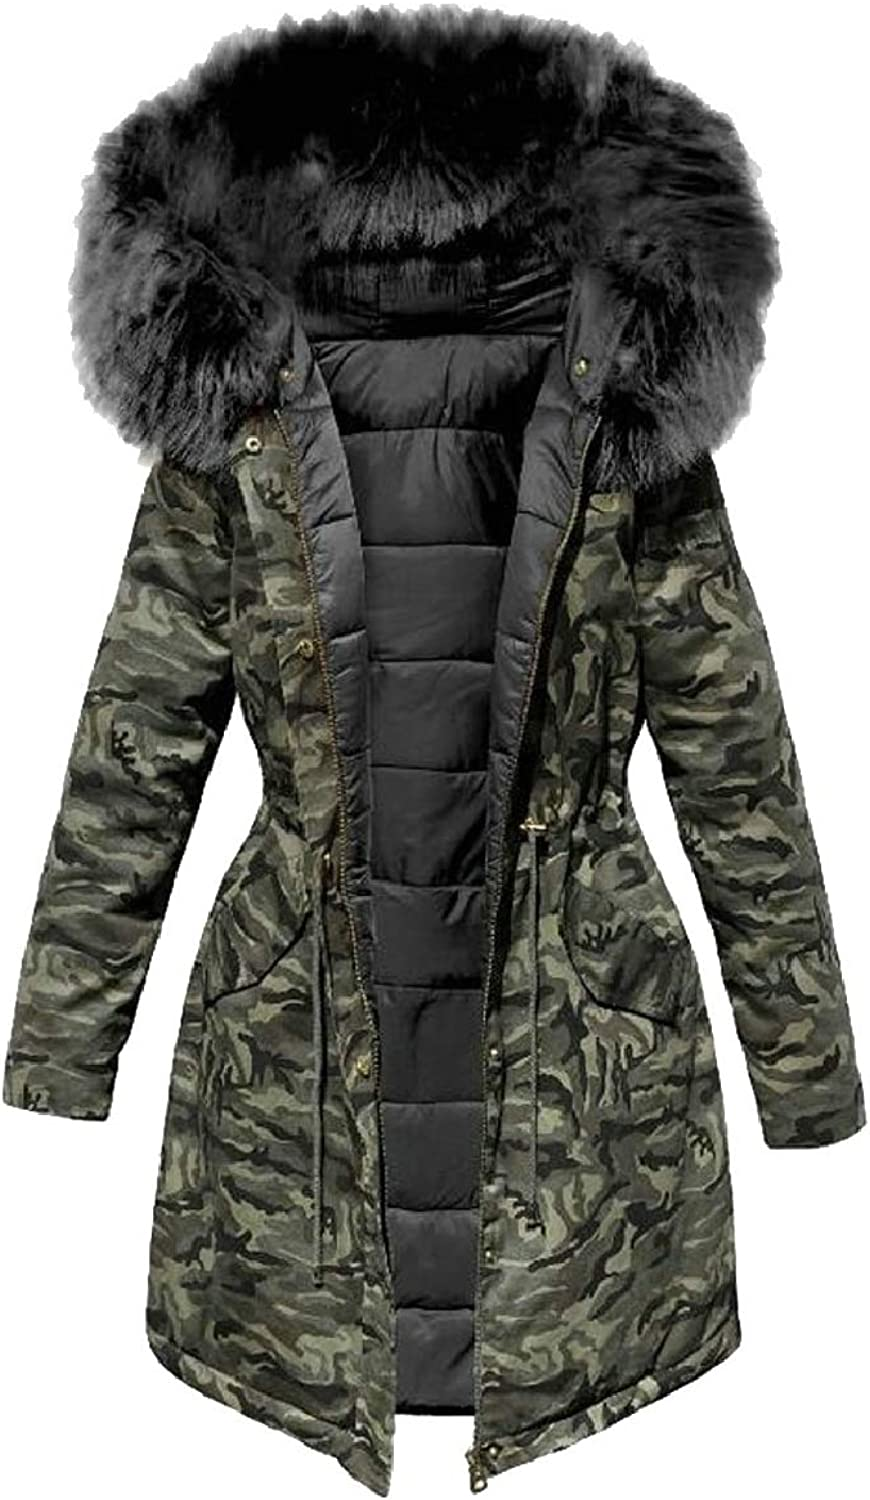 Xswsy XGCA Women's Winter Warm Camo Down Quilted Puffer Jacket with Faux Fur Hood